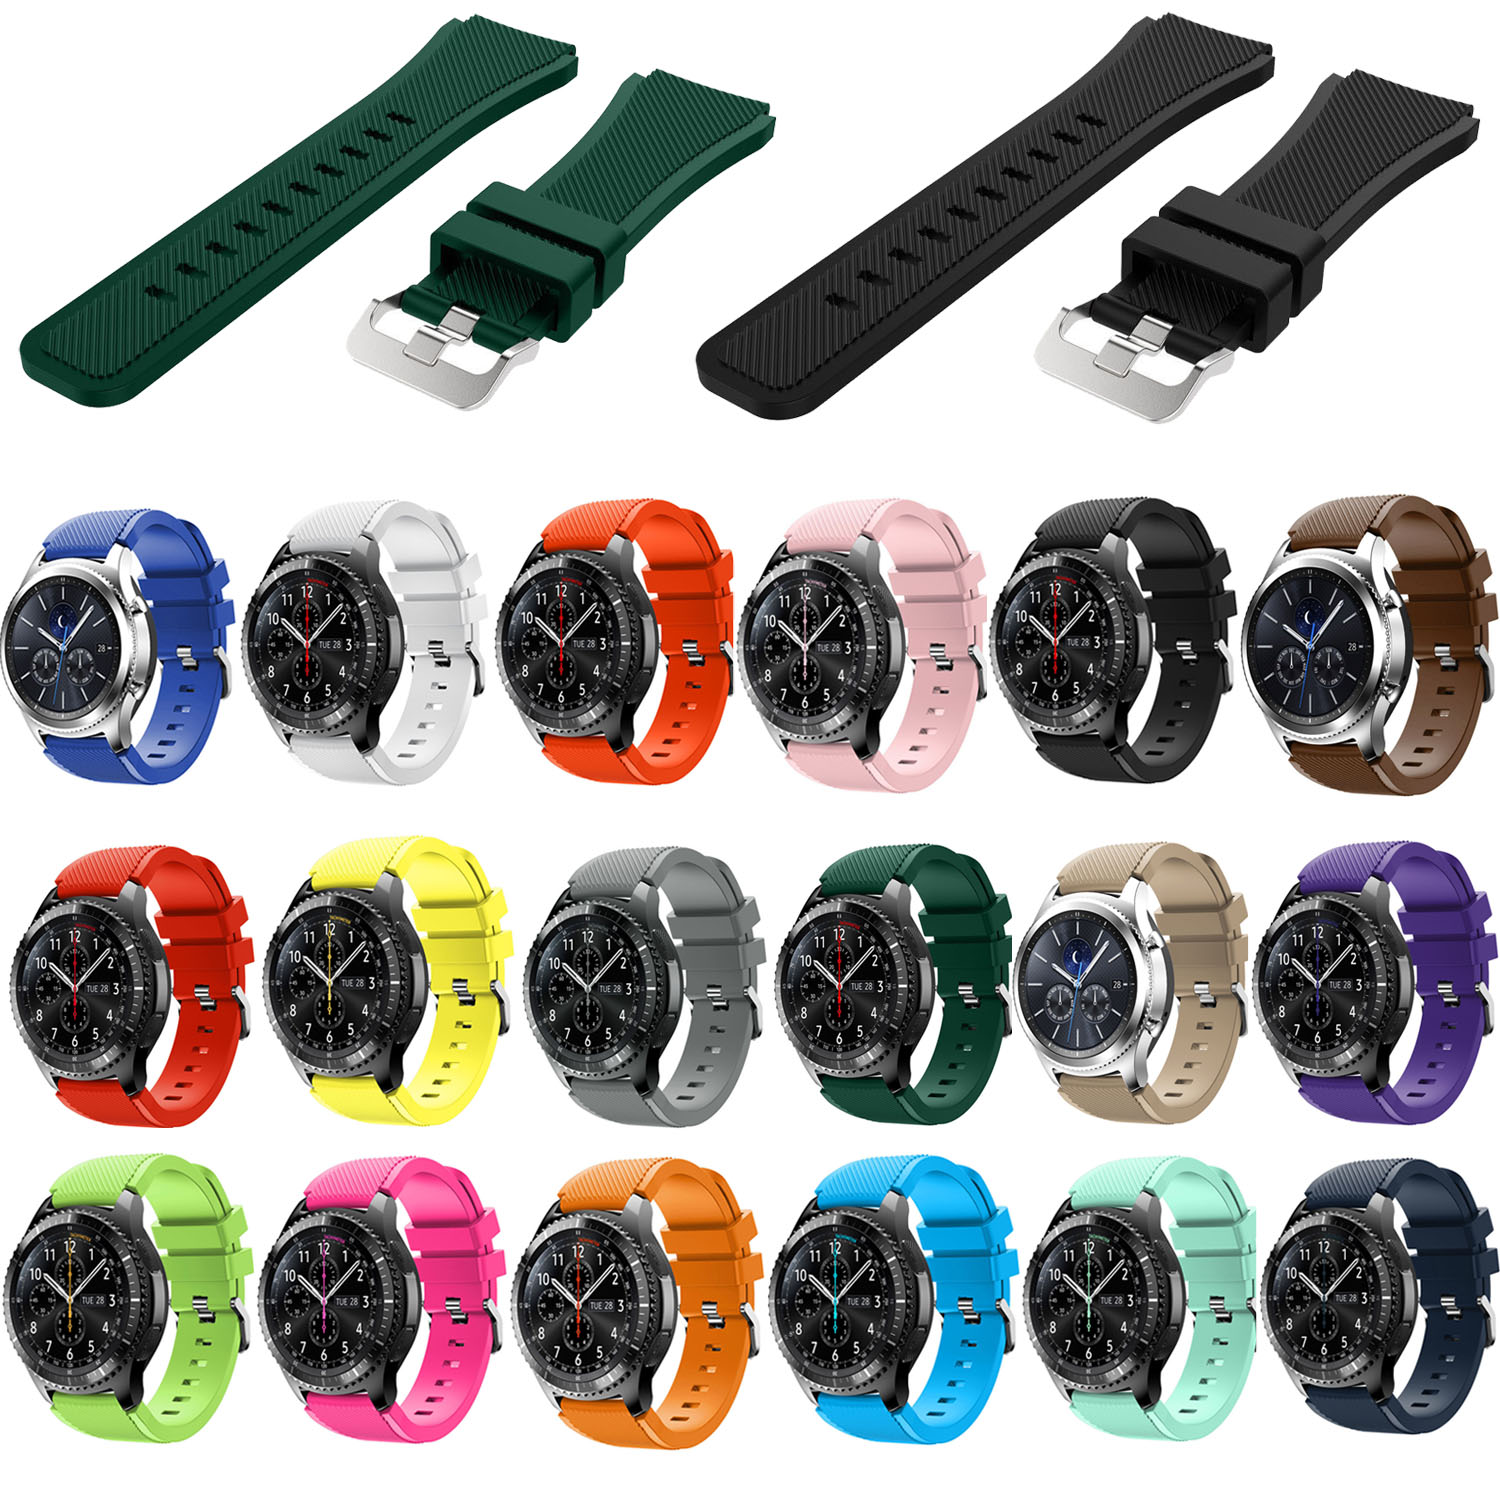 18 Colors Rubber Wrist Strap for Samsung Gear S3 Frontier Silicone Watch Bands 22 mm Gear S3 Classic Replacement Bracelet Band 18 colors rubber wrist strap for samsung gear s3 frontier silicone watch band for samsung gear s3 classic bracelet band 22mm